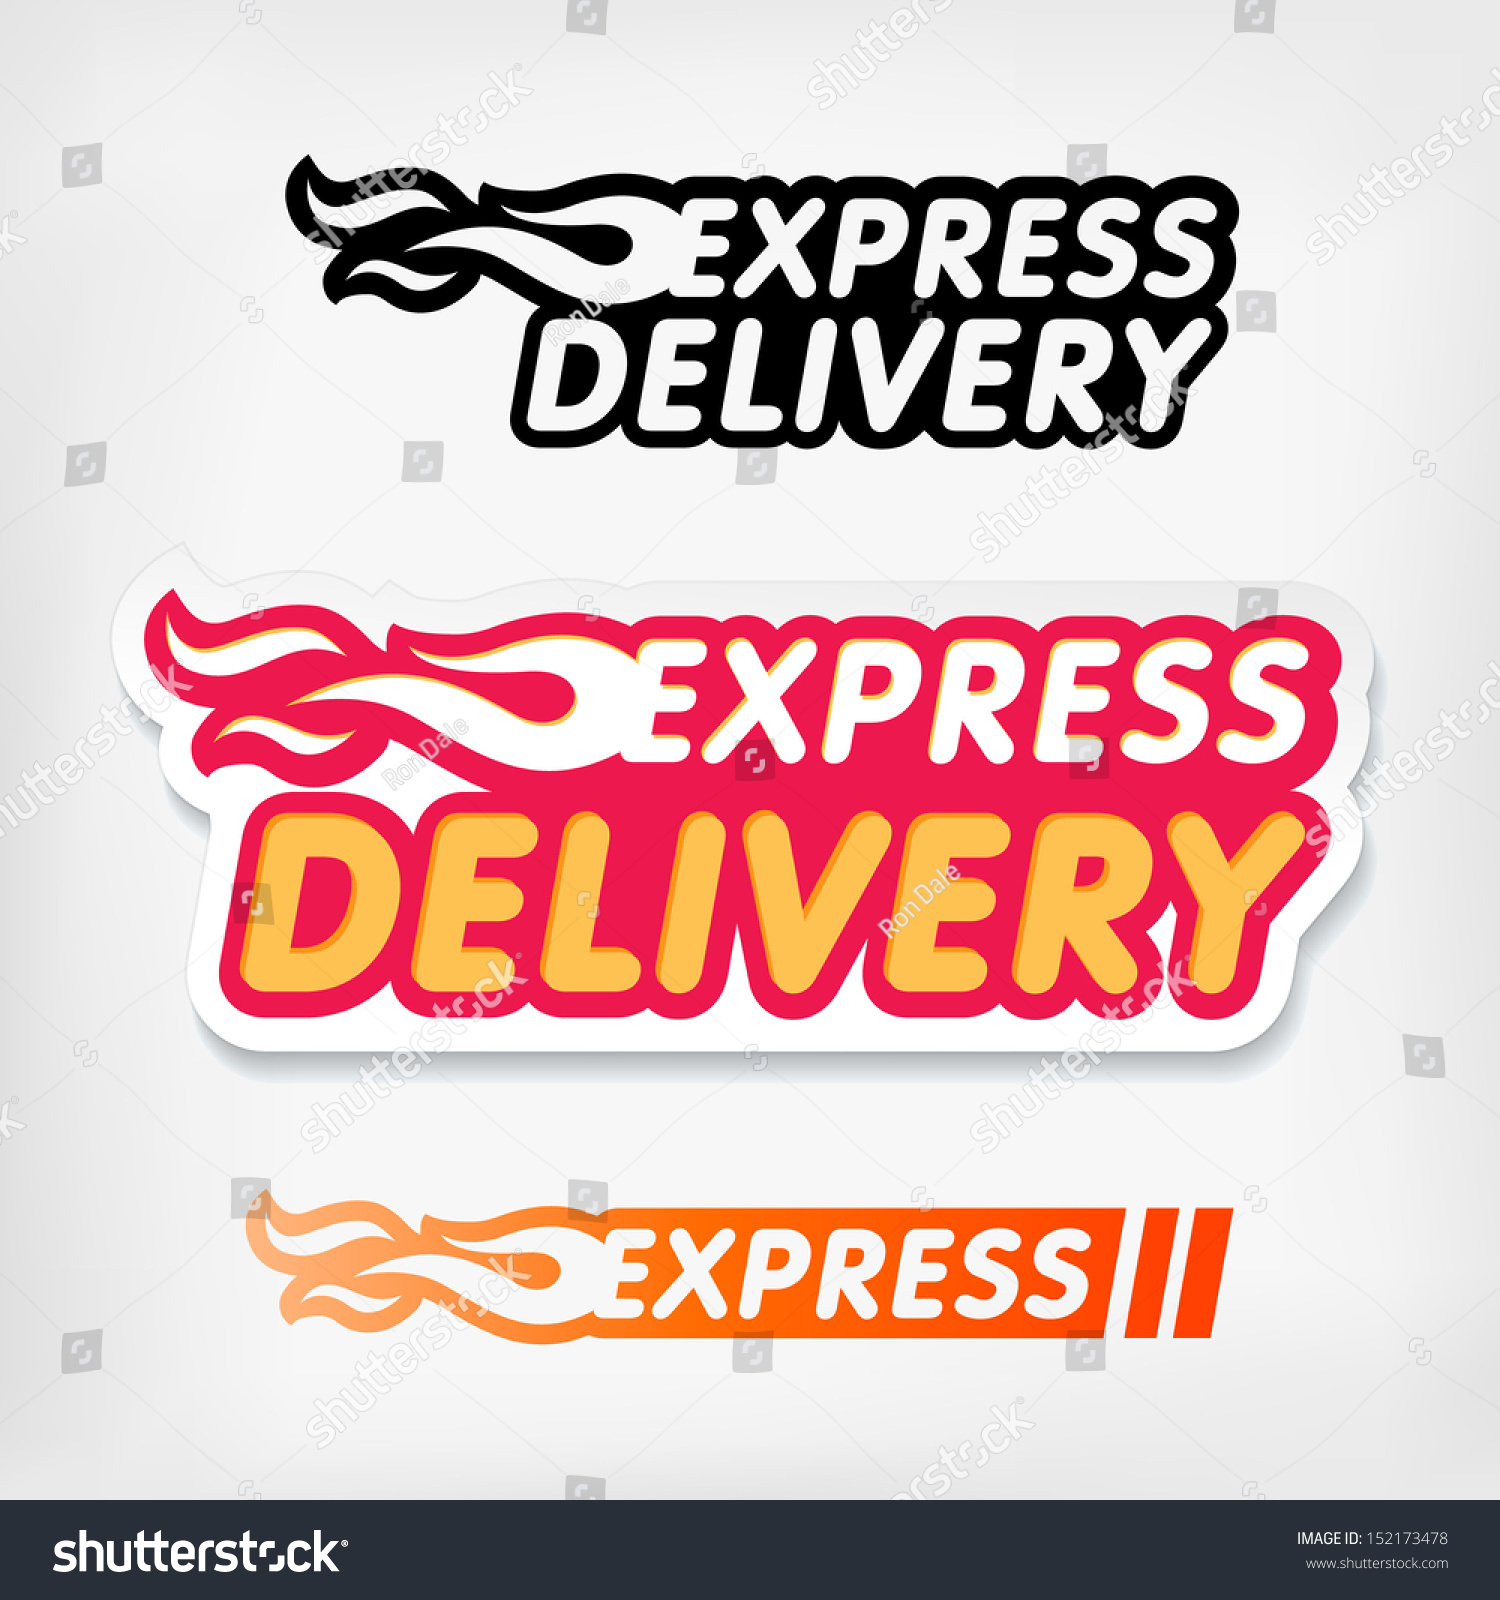 Express - Express Delivery Symbols Vector Express Delivery Logo Template Stickers Set